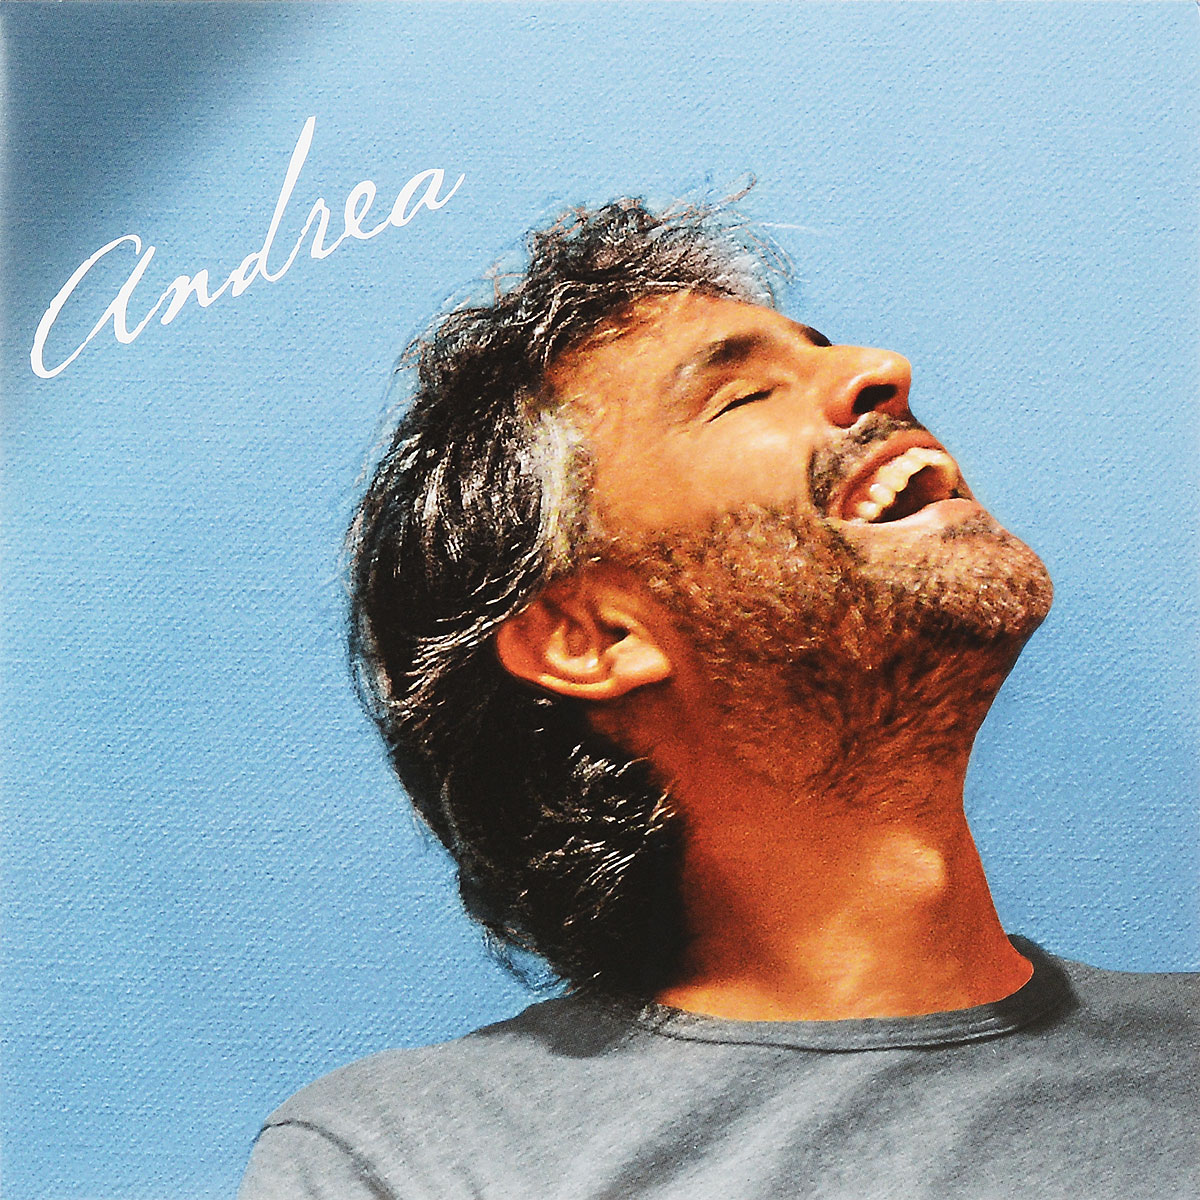 Андреа Бочелли Andrea Bocelli. Andrea (2 LP) андреа бочелли andrea bocelli concerto one night in central park super deluxe edition 2 cd 2 dvd